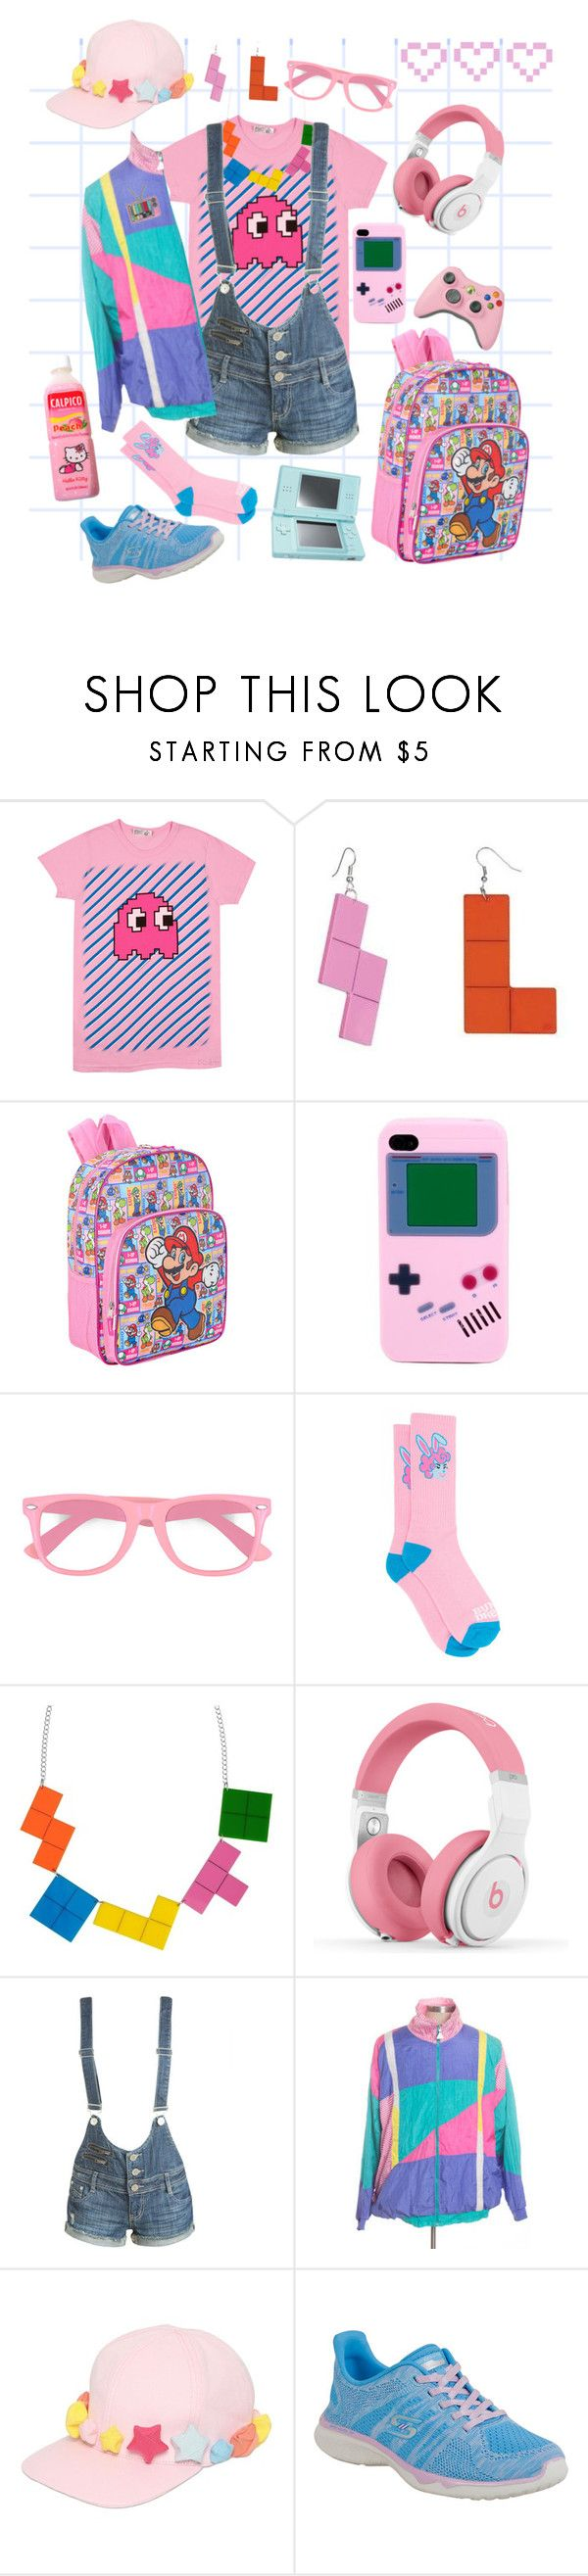 """💖game girl💖"" by jekaclover ❤ liked on Polyvore featuring Tatty Devine, Nintendo, fred flare, Any Old Iron, LIST, Nicki Minaj, Wet Seal, Francesco Ballestrazzi, Skechers and 80s"